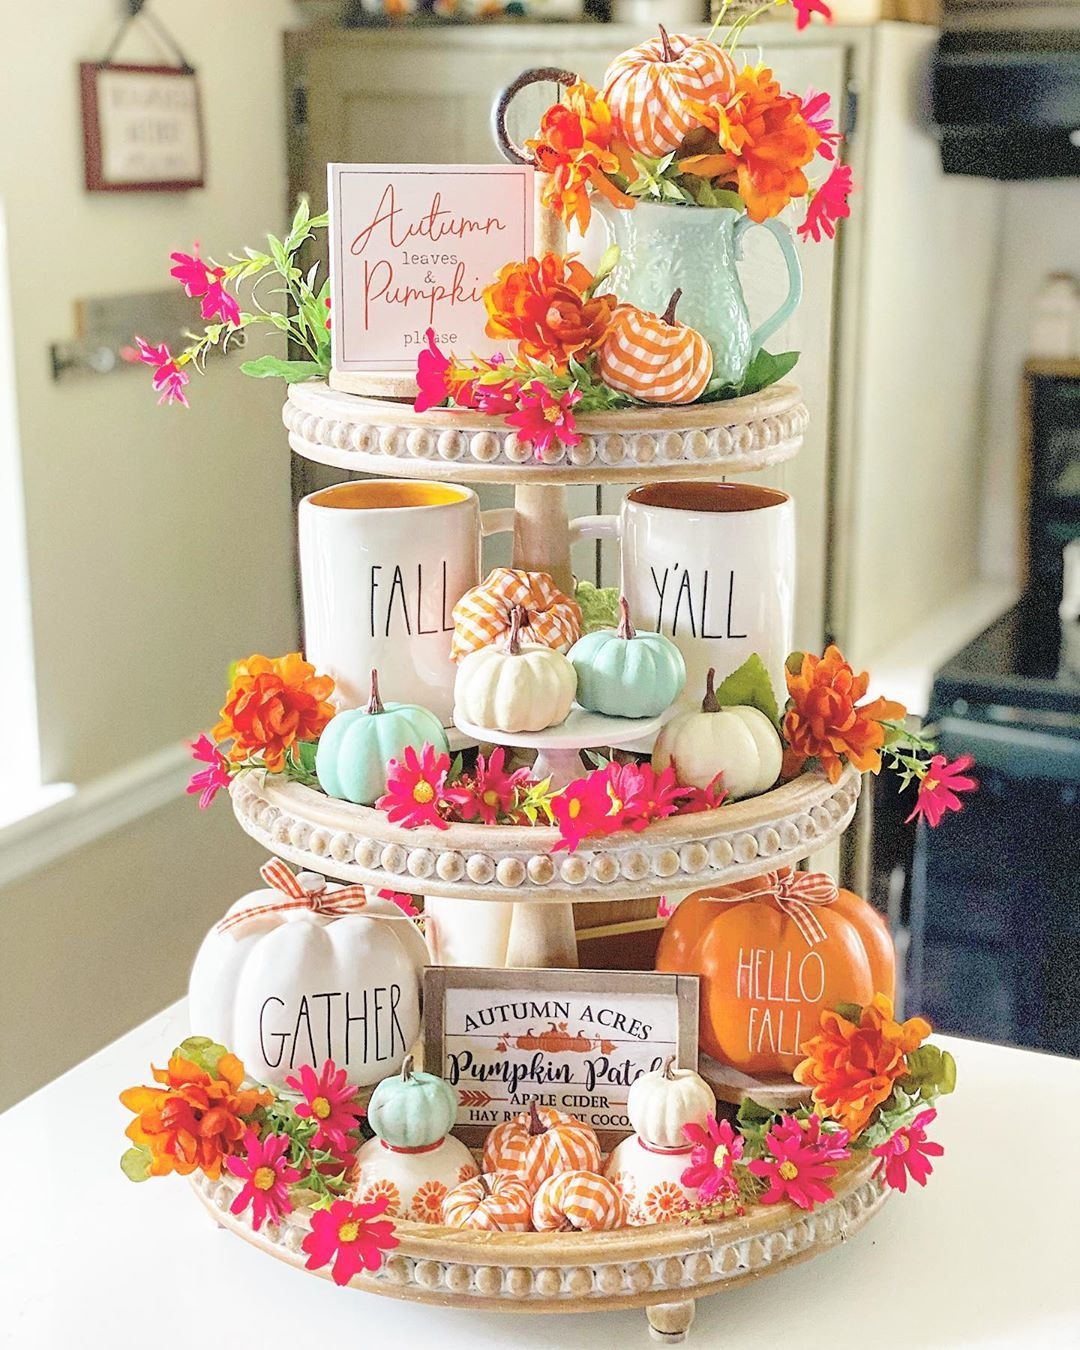 20 Best Tiered Tray Decor Ideas For Fall Of Life And Lisa Tiered Tray Tiered Tray Decor Fall Thanksgiving Decor